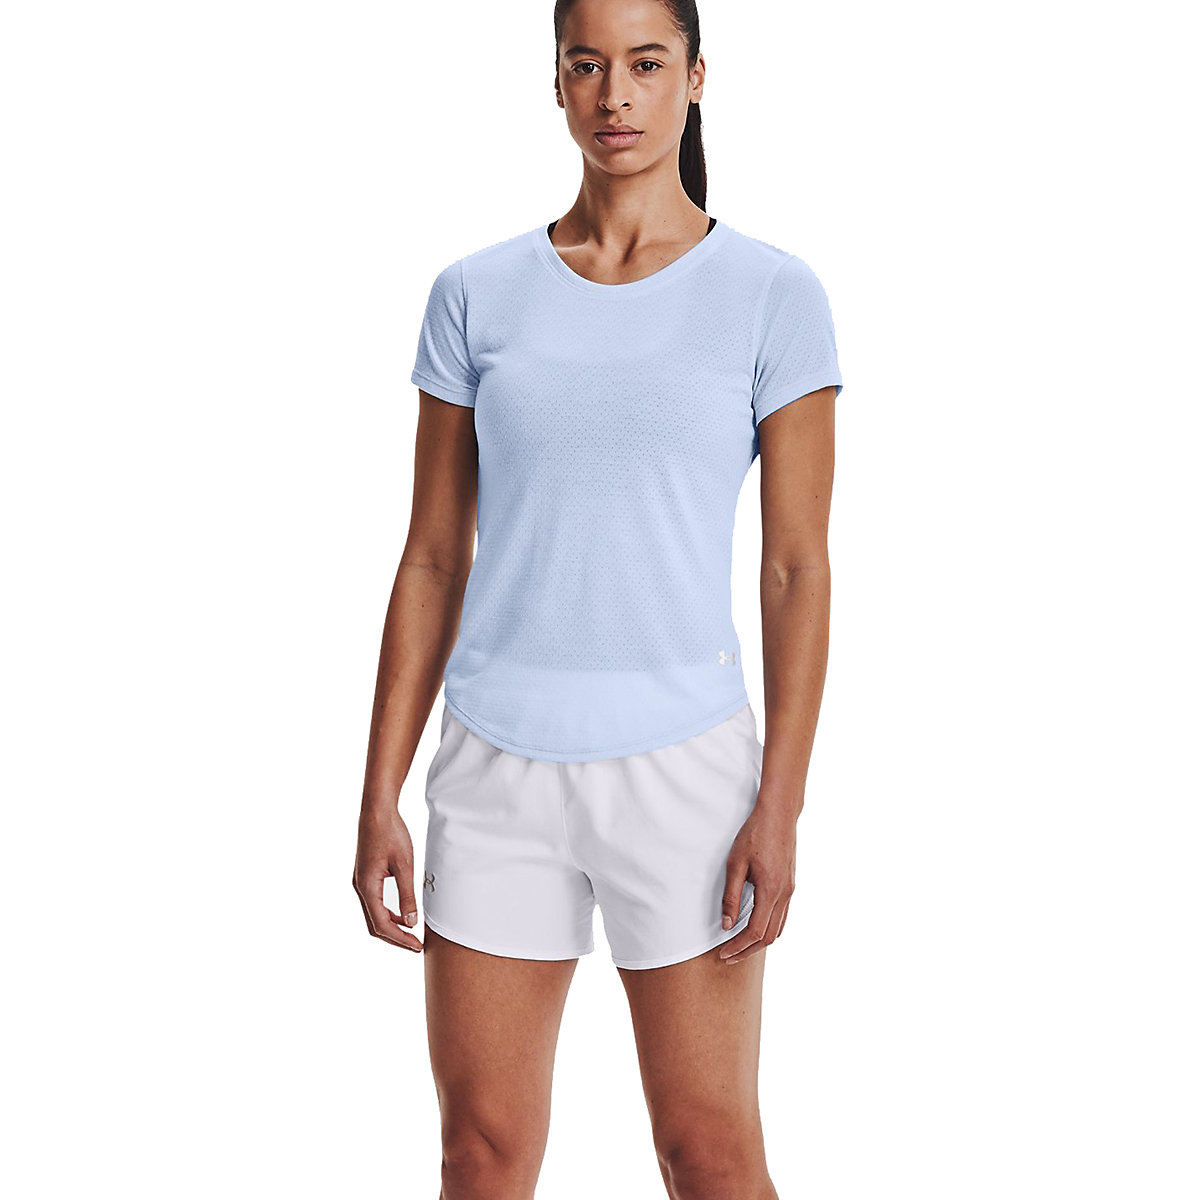 Women's Under Armour Streaker Short Sleeve - Color: Isotope Blue - Size: S, Isotope Blue, large, image 1